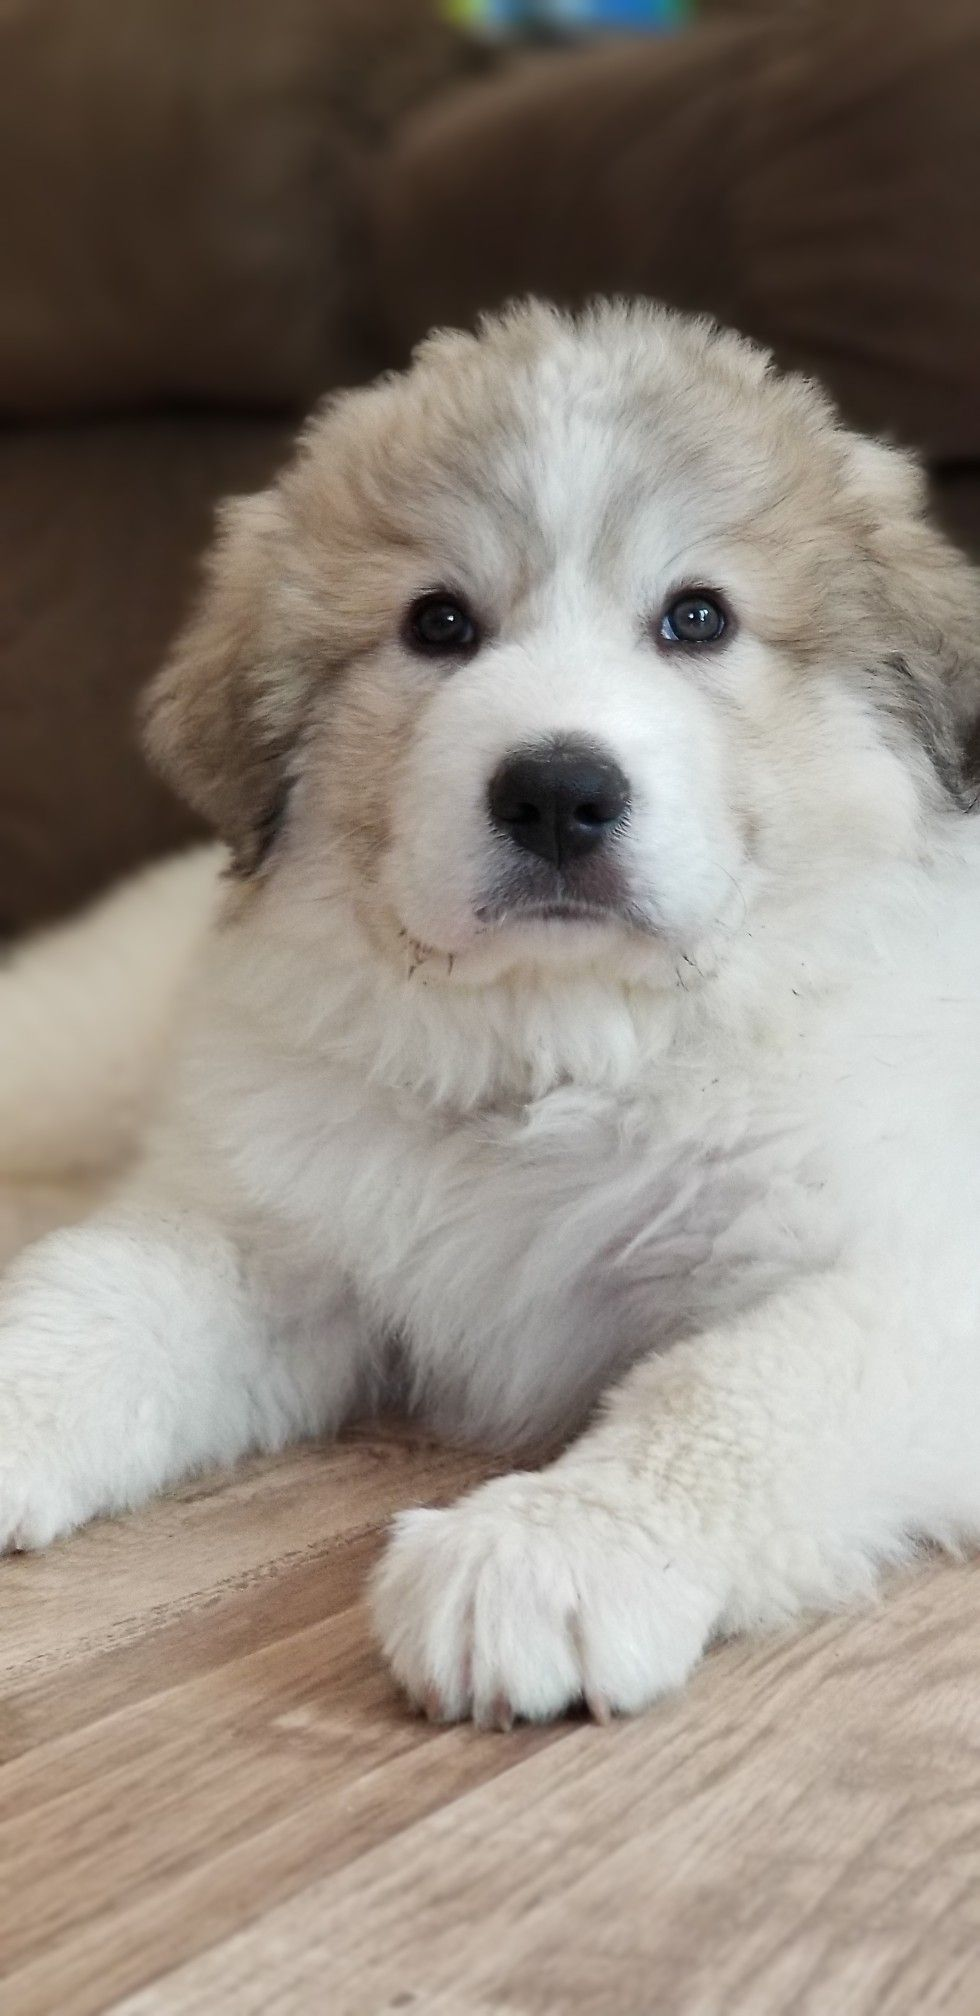 10 Week Old Stiles With Images Great Pyrenees Puppies Dogs